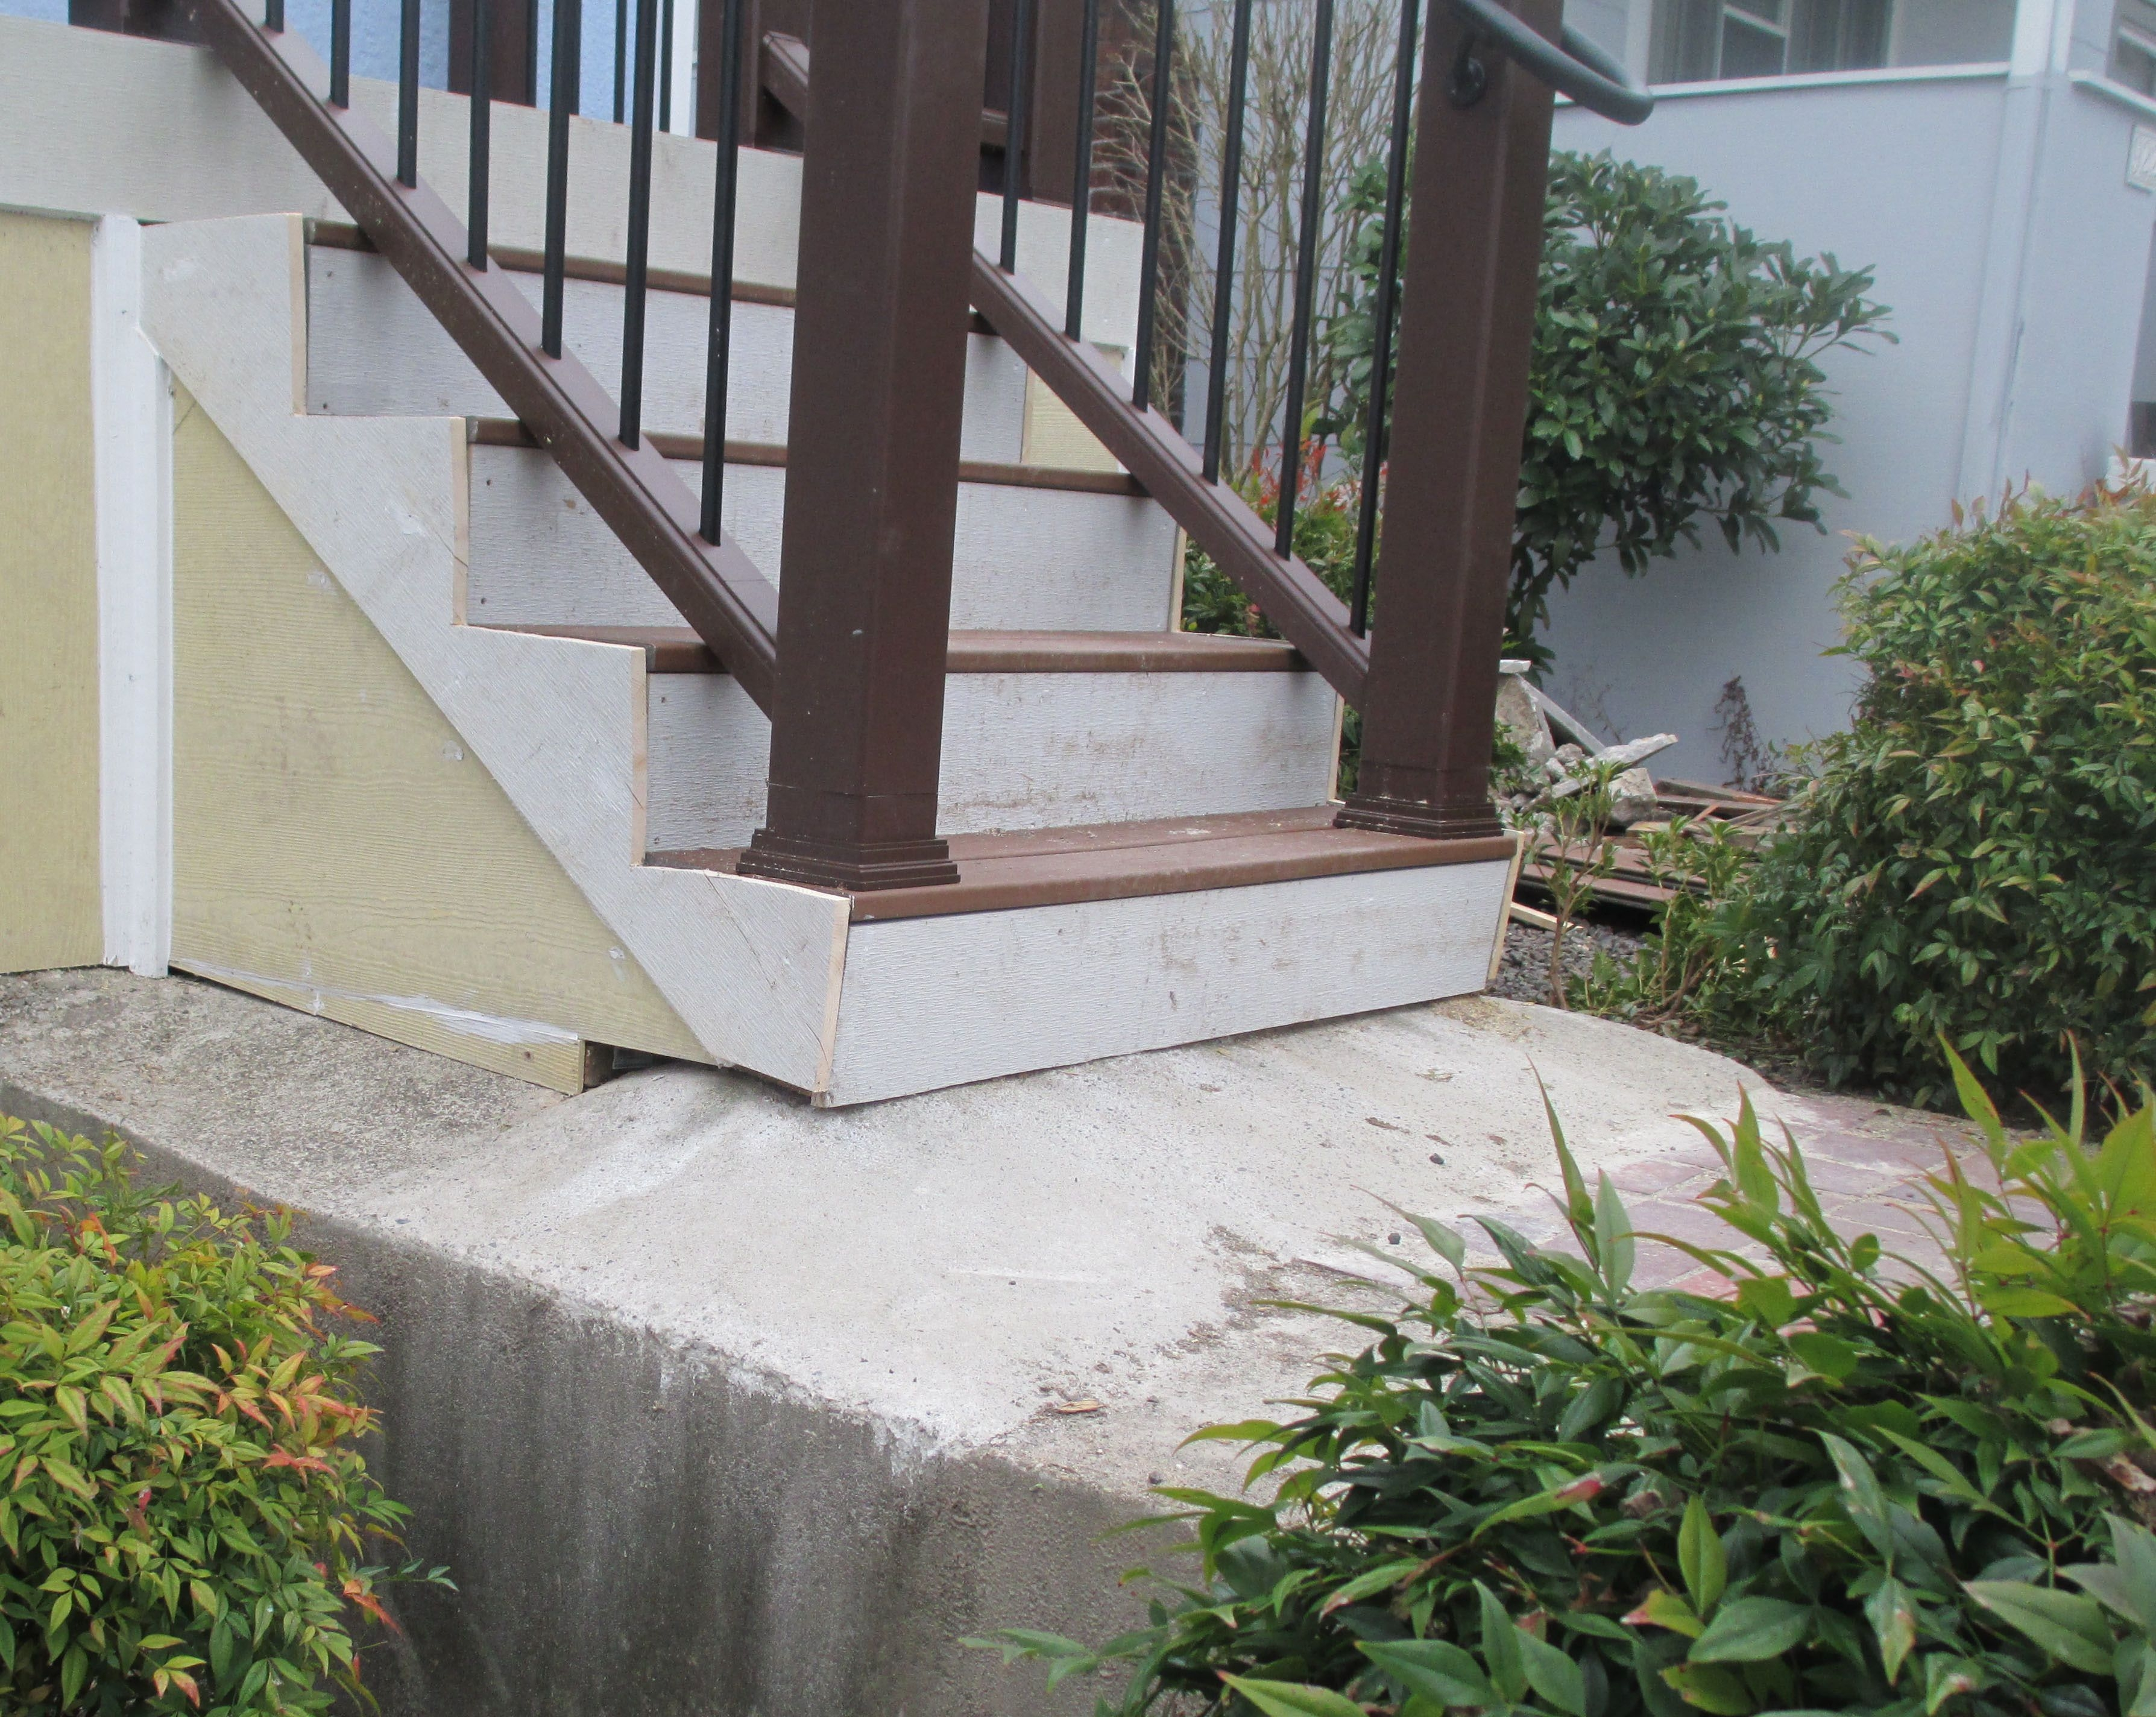 How To Avoid Rookie Mistakes When Installing Porch Steps The   Front Stairs Designs With Landings   Small Space   Flared   Architectural   Exterior   Curved